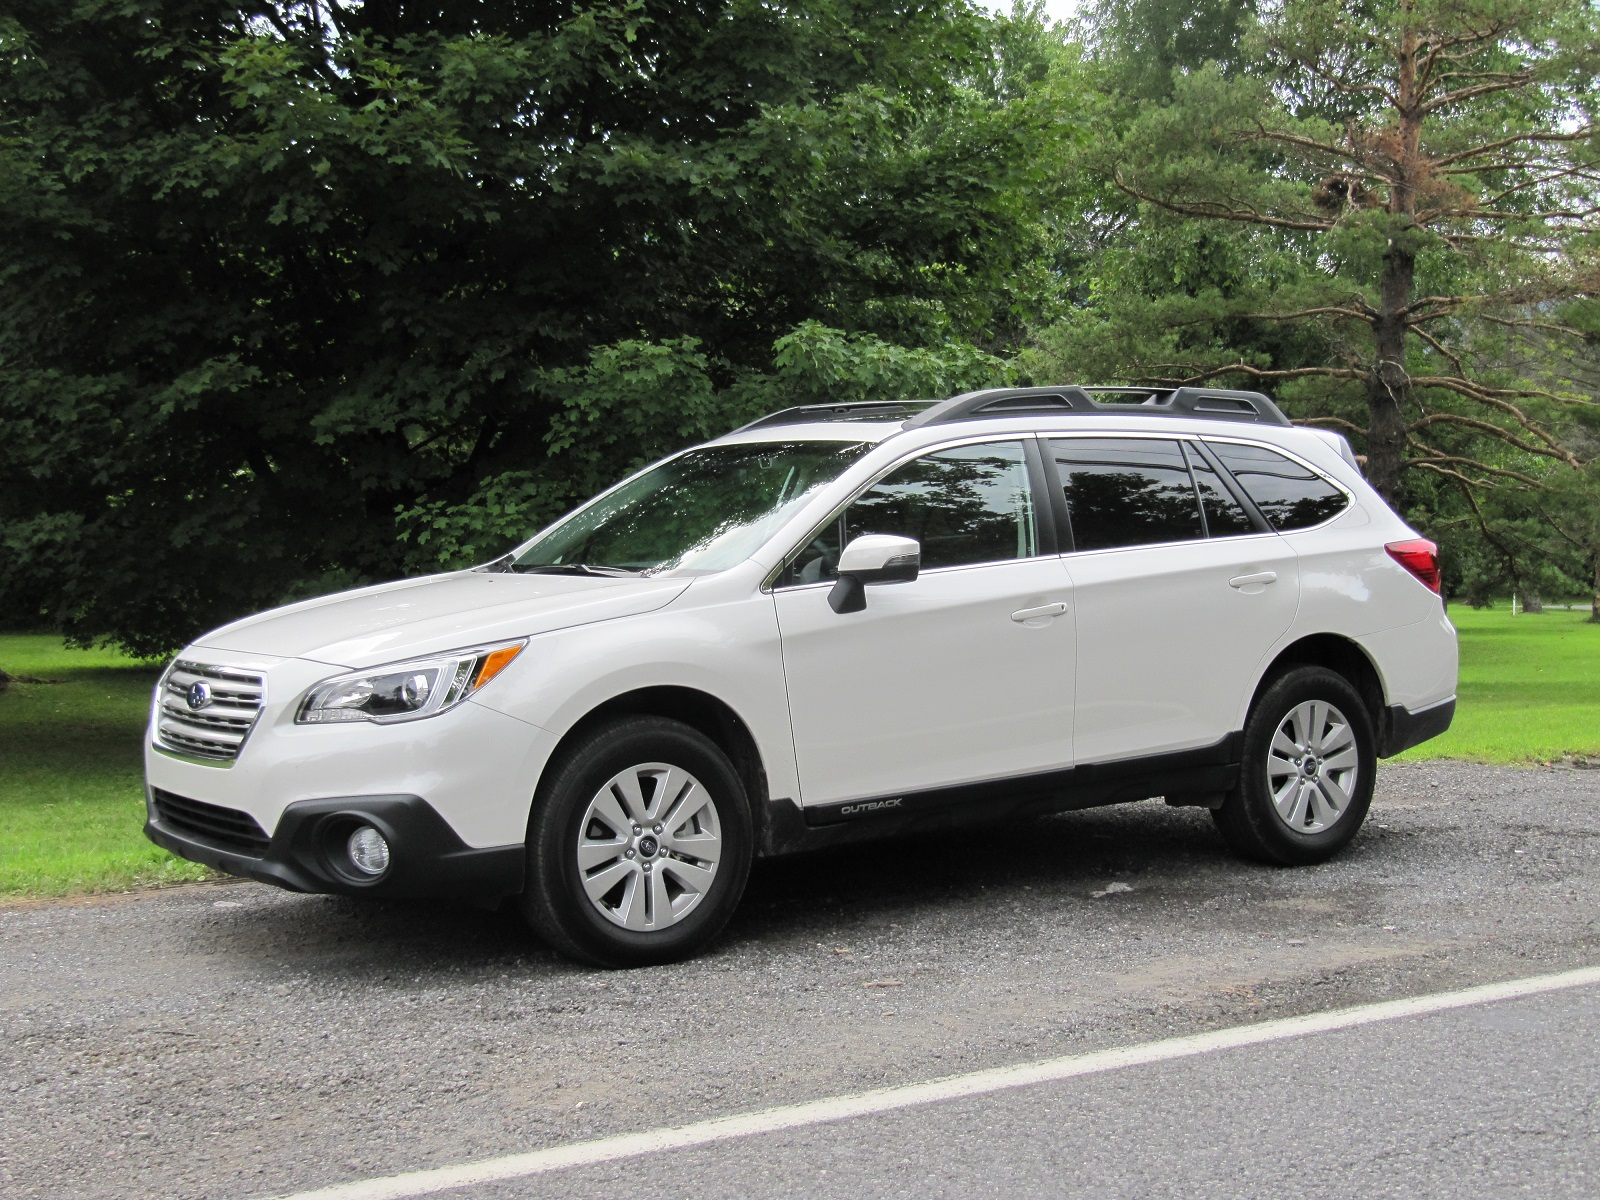 2015 Subaru Outback For Sale >> Hot Tapping Natural Gas Line Gas Mileage For A Subaru Outback